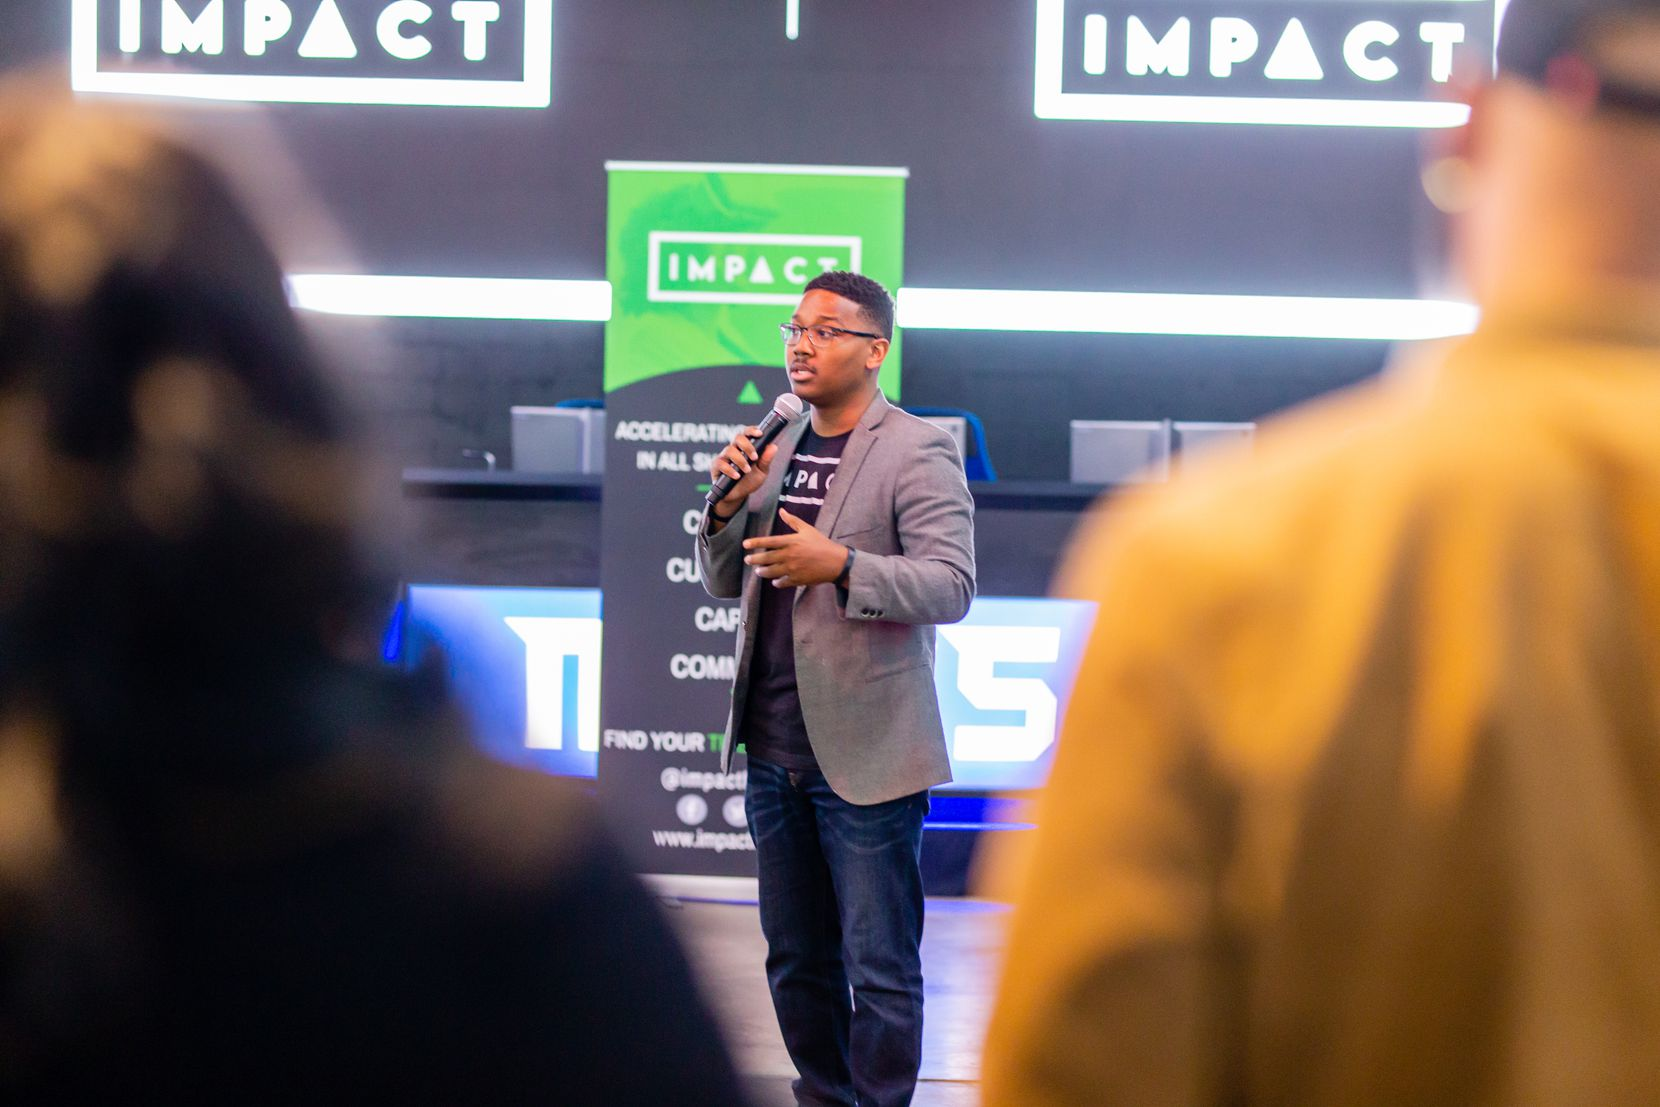 CEO and founder Benjamin Vann speaks at a VIP kickoff event for the spring cohort of the Impact Ventures Accelerator Program, before gatherings were limited.